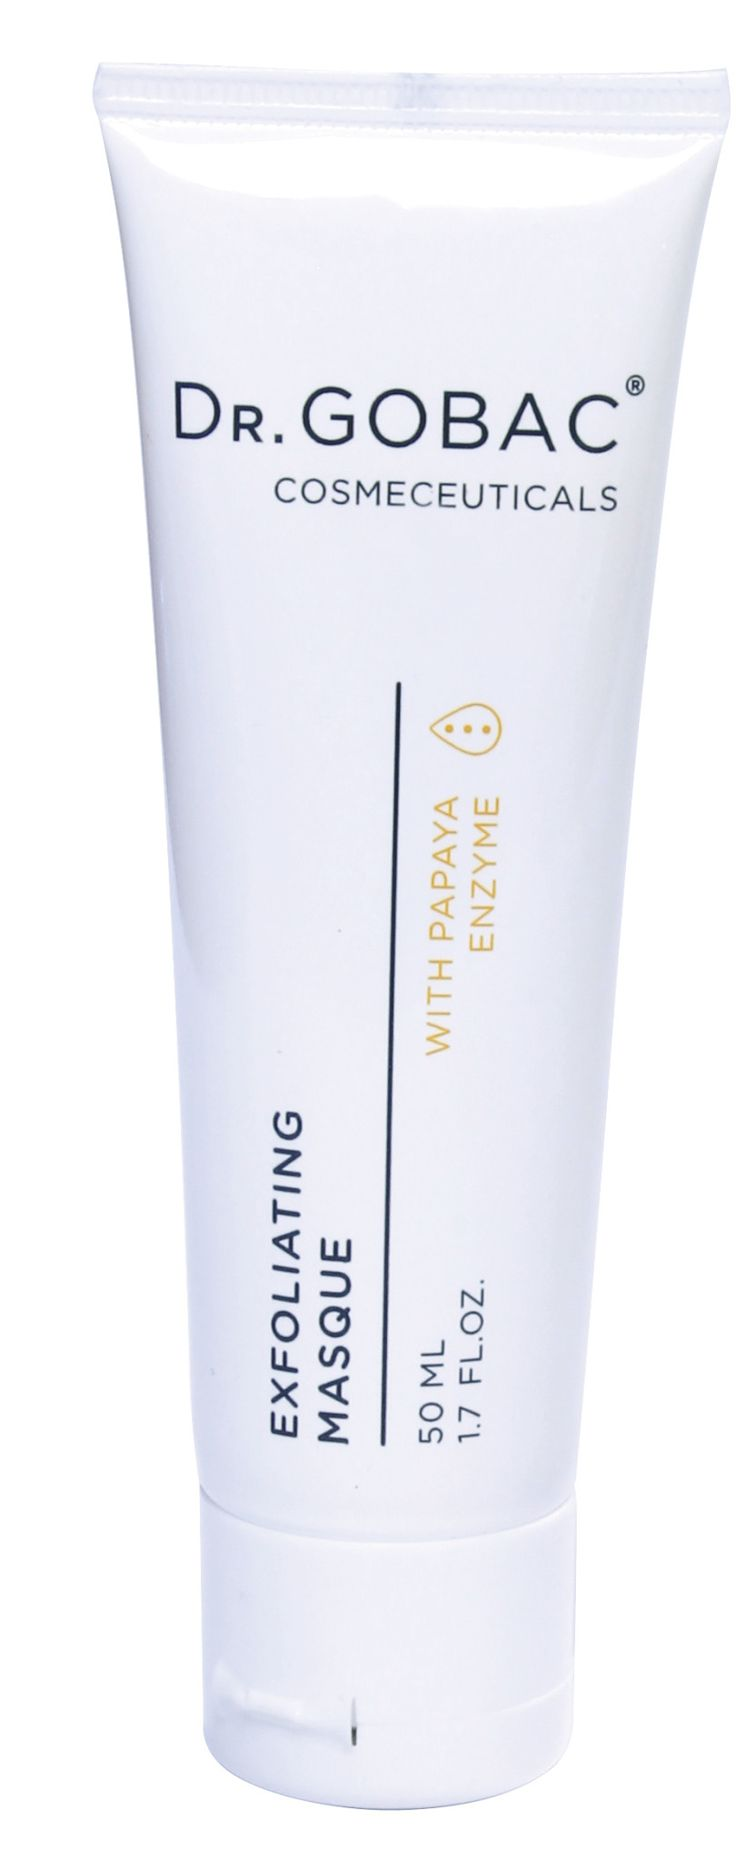 Dr Gobac's Exfoliating Masque – gentle does it! Thanks for landing on Wiscellaneous!